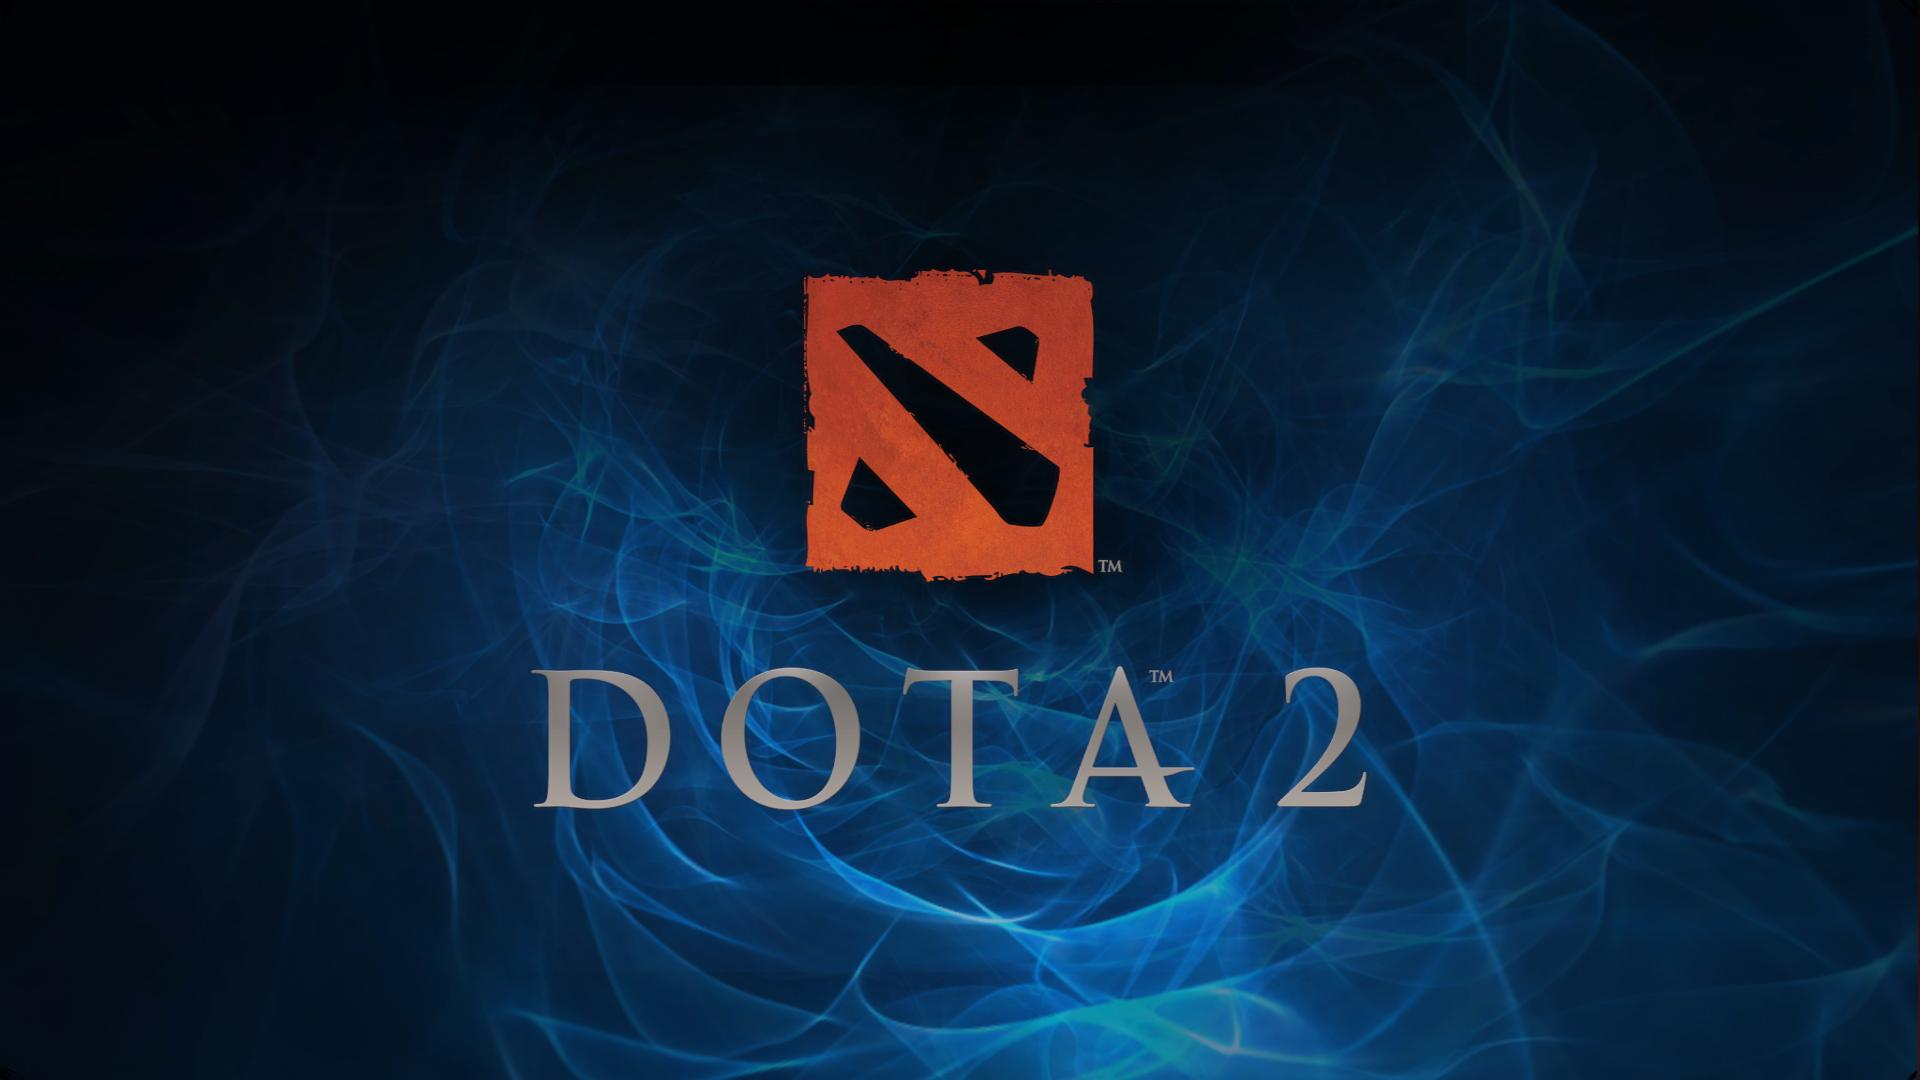 Dota 2: Lane Of My Existence: Why Dota 2?